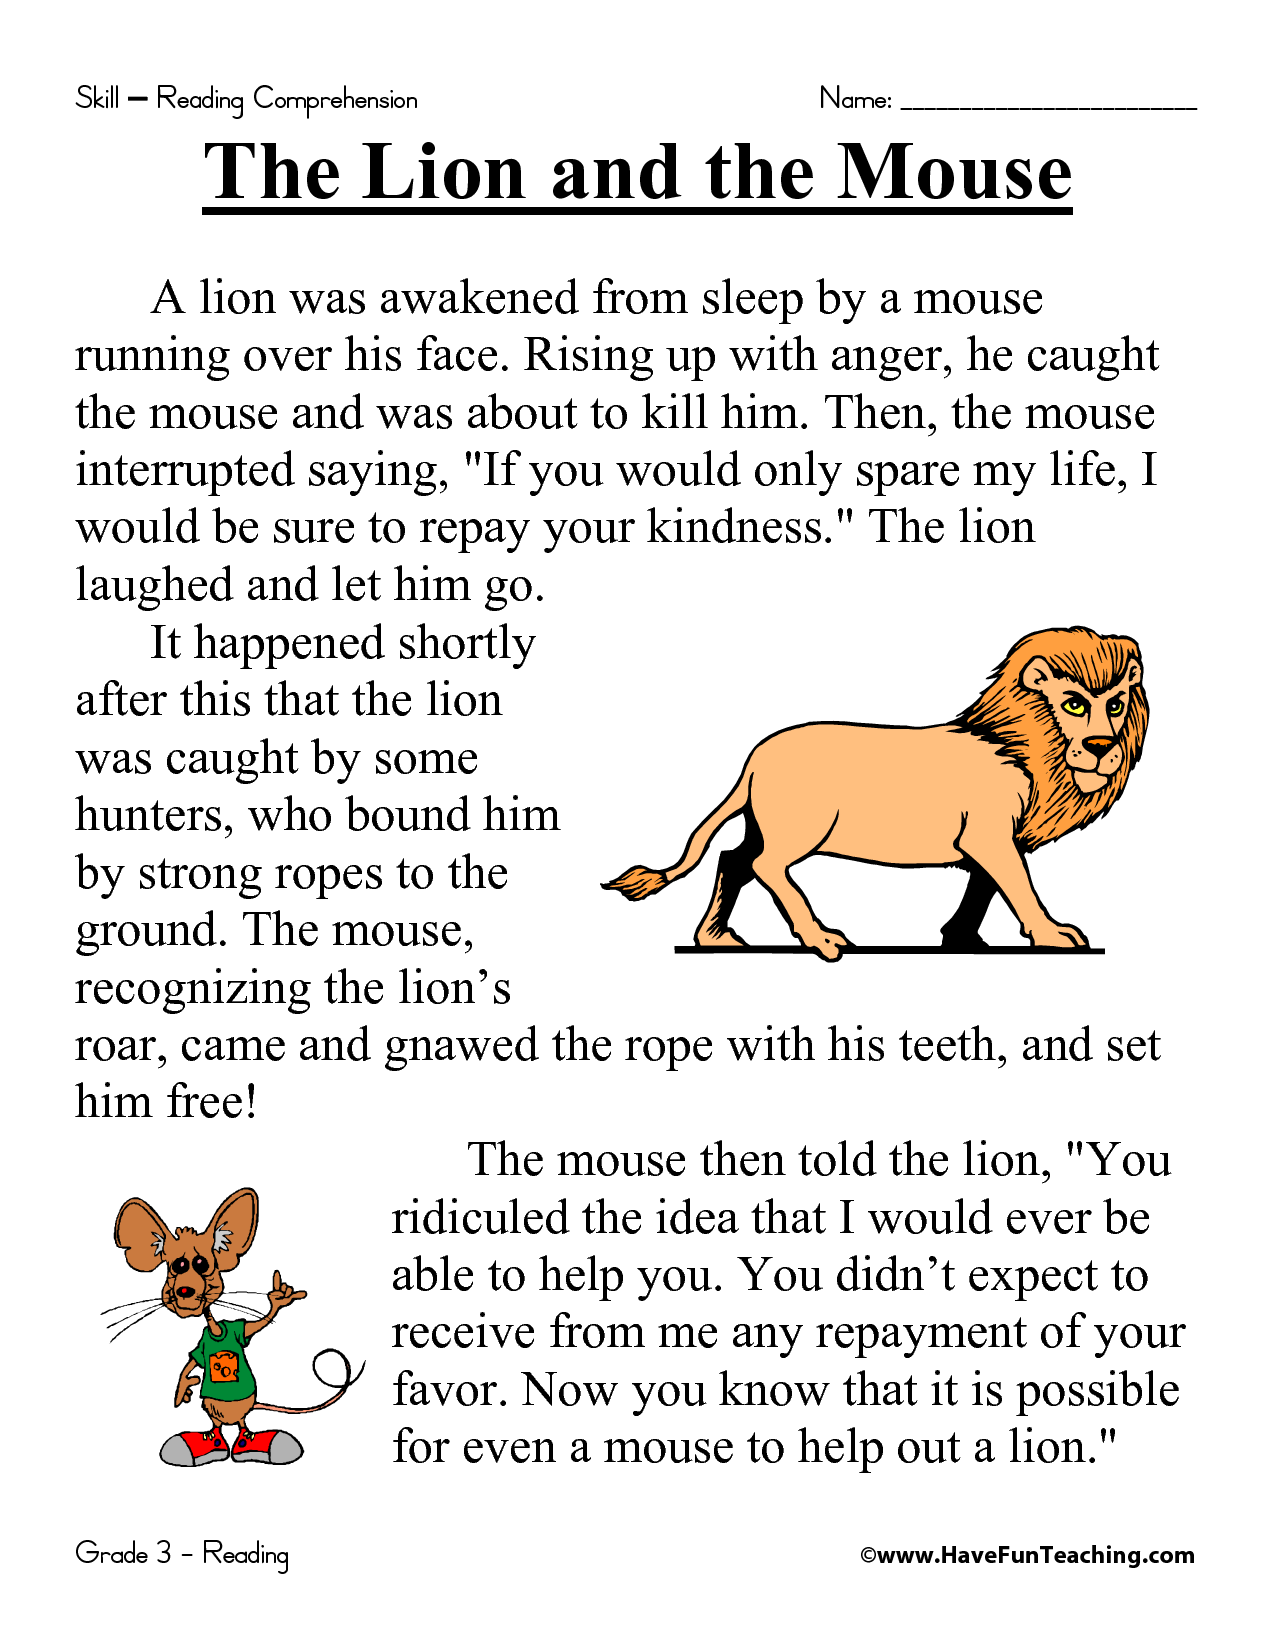 worksheet 6th Grade Reading Comprehension Worksheets Free first grade reading comprehension worksheets the lion and mouse worksheet